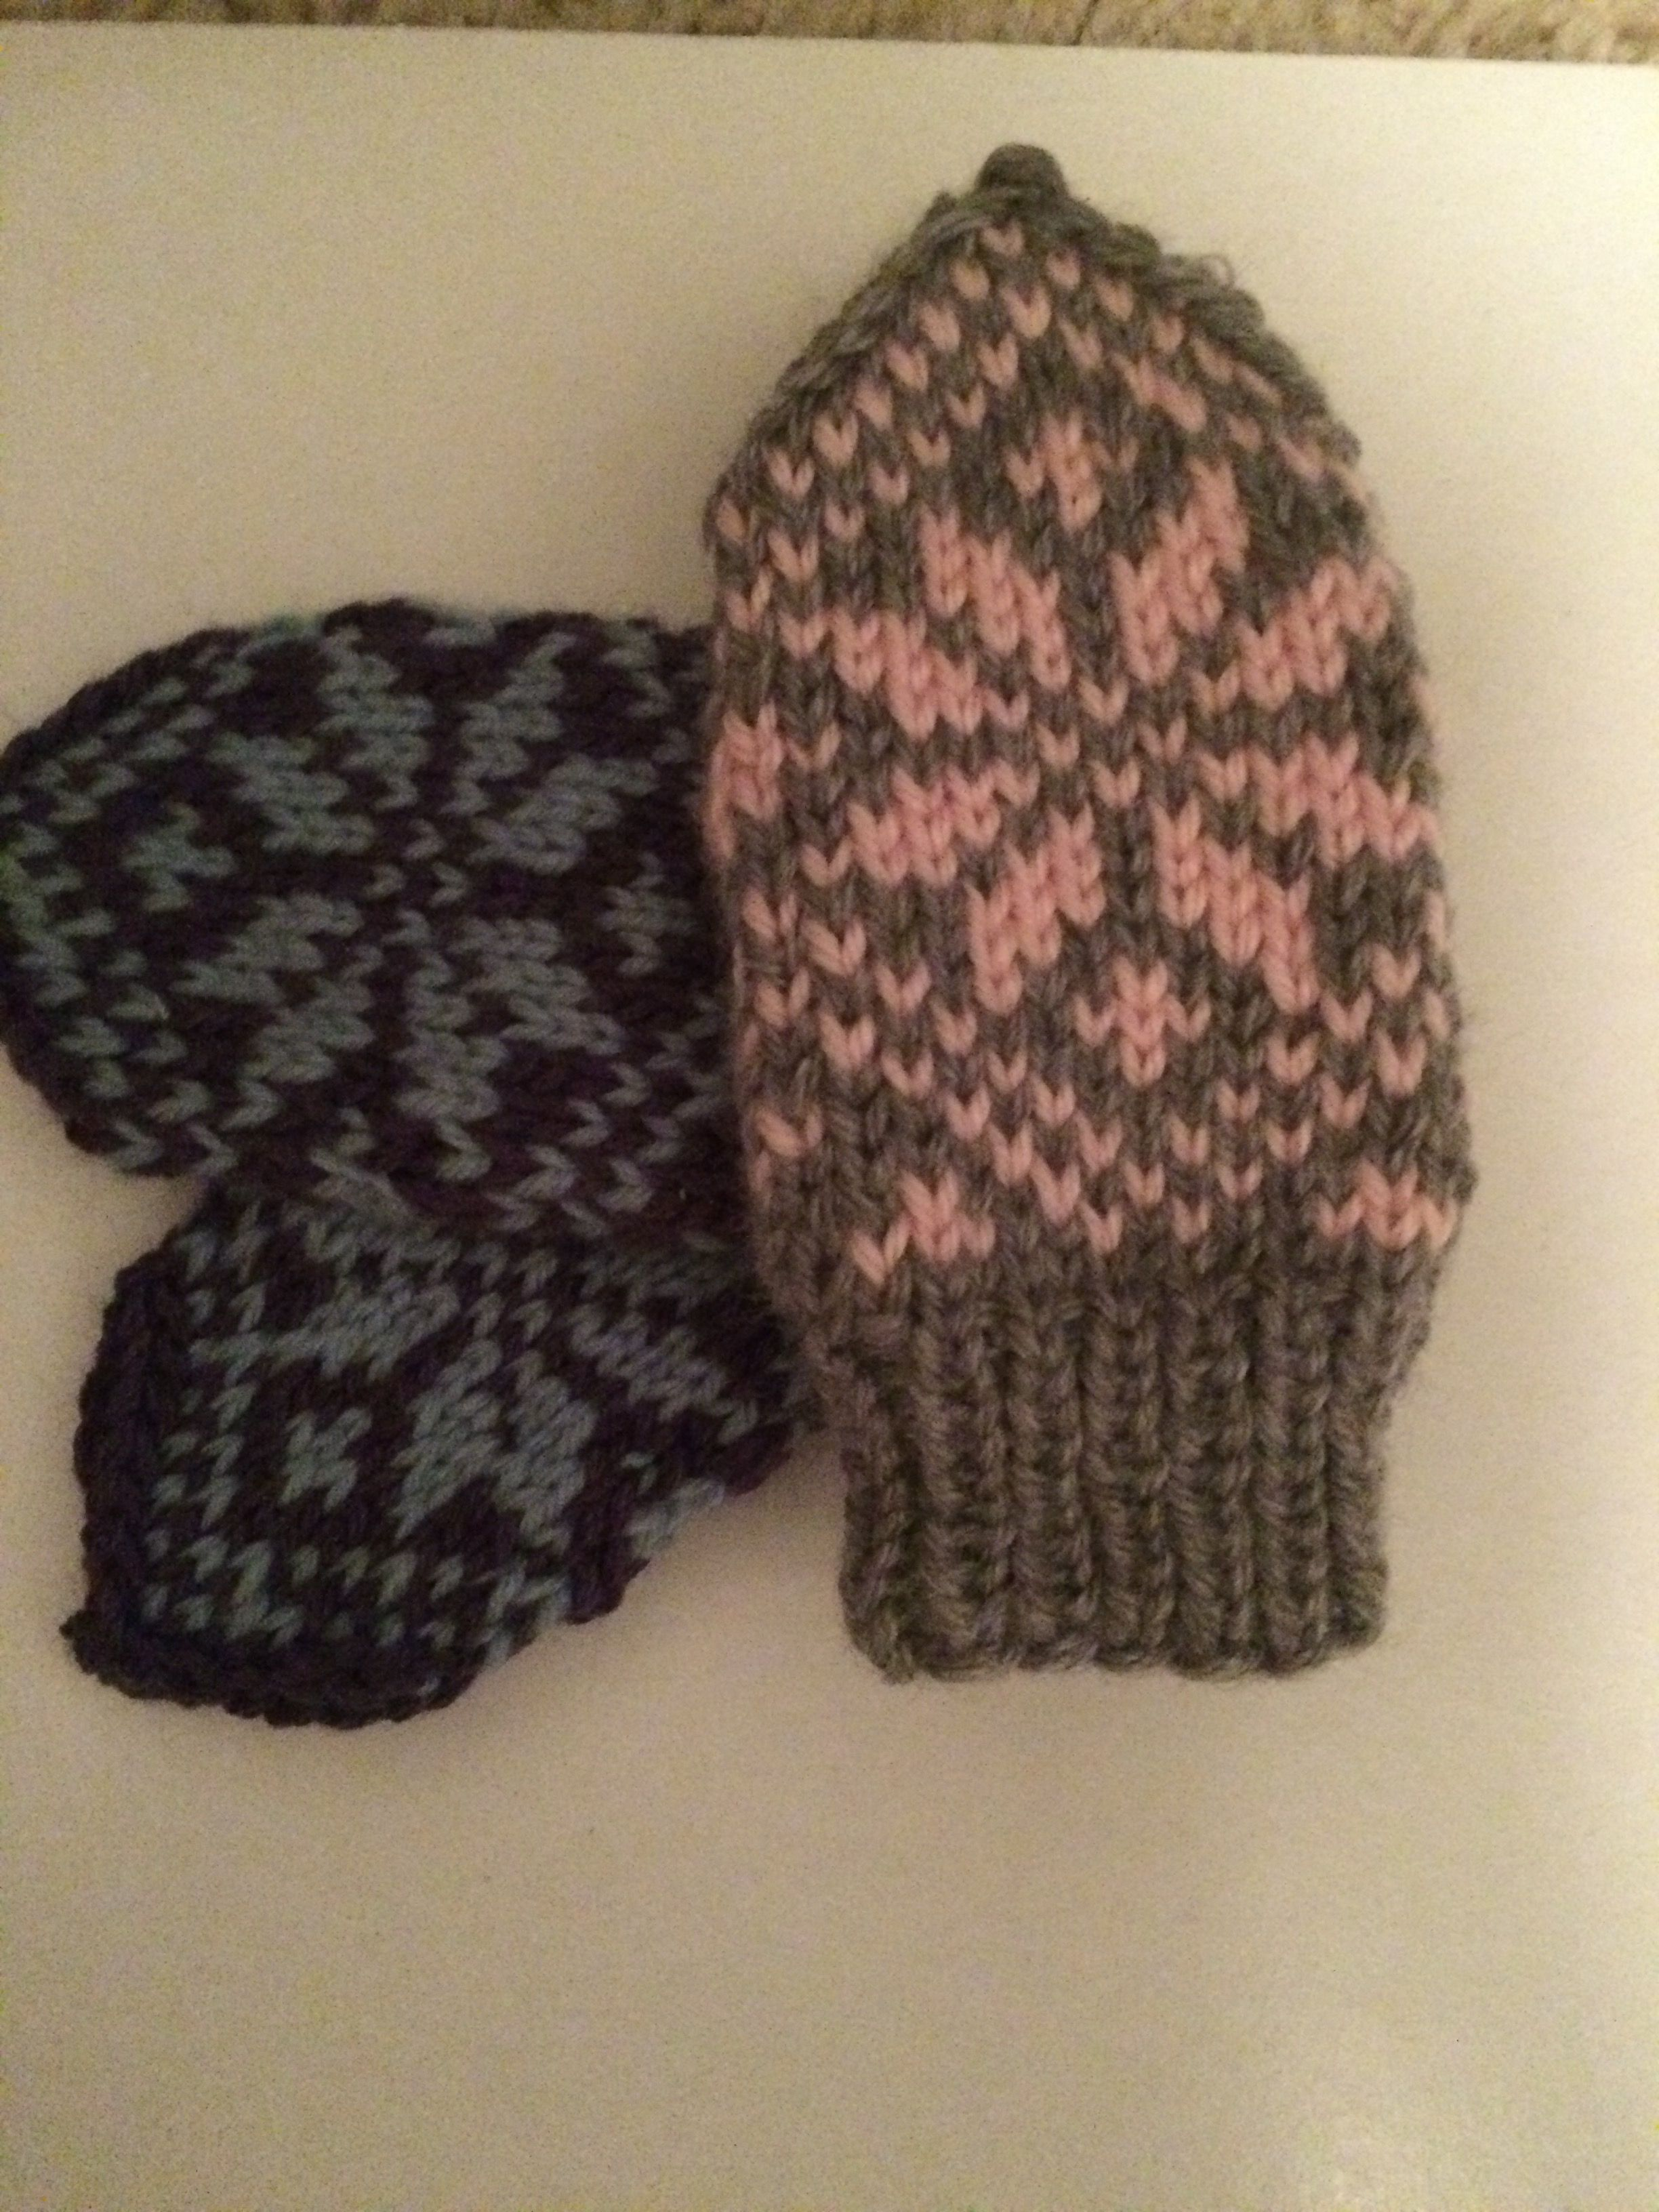 Thumbless baby mittens in my Etsy store soon. Fleece lined. https ...